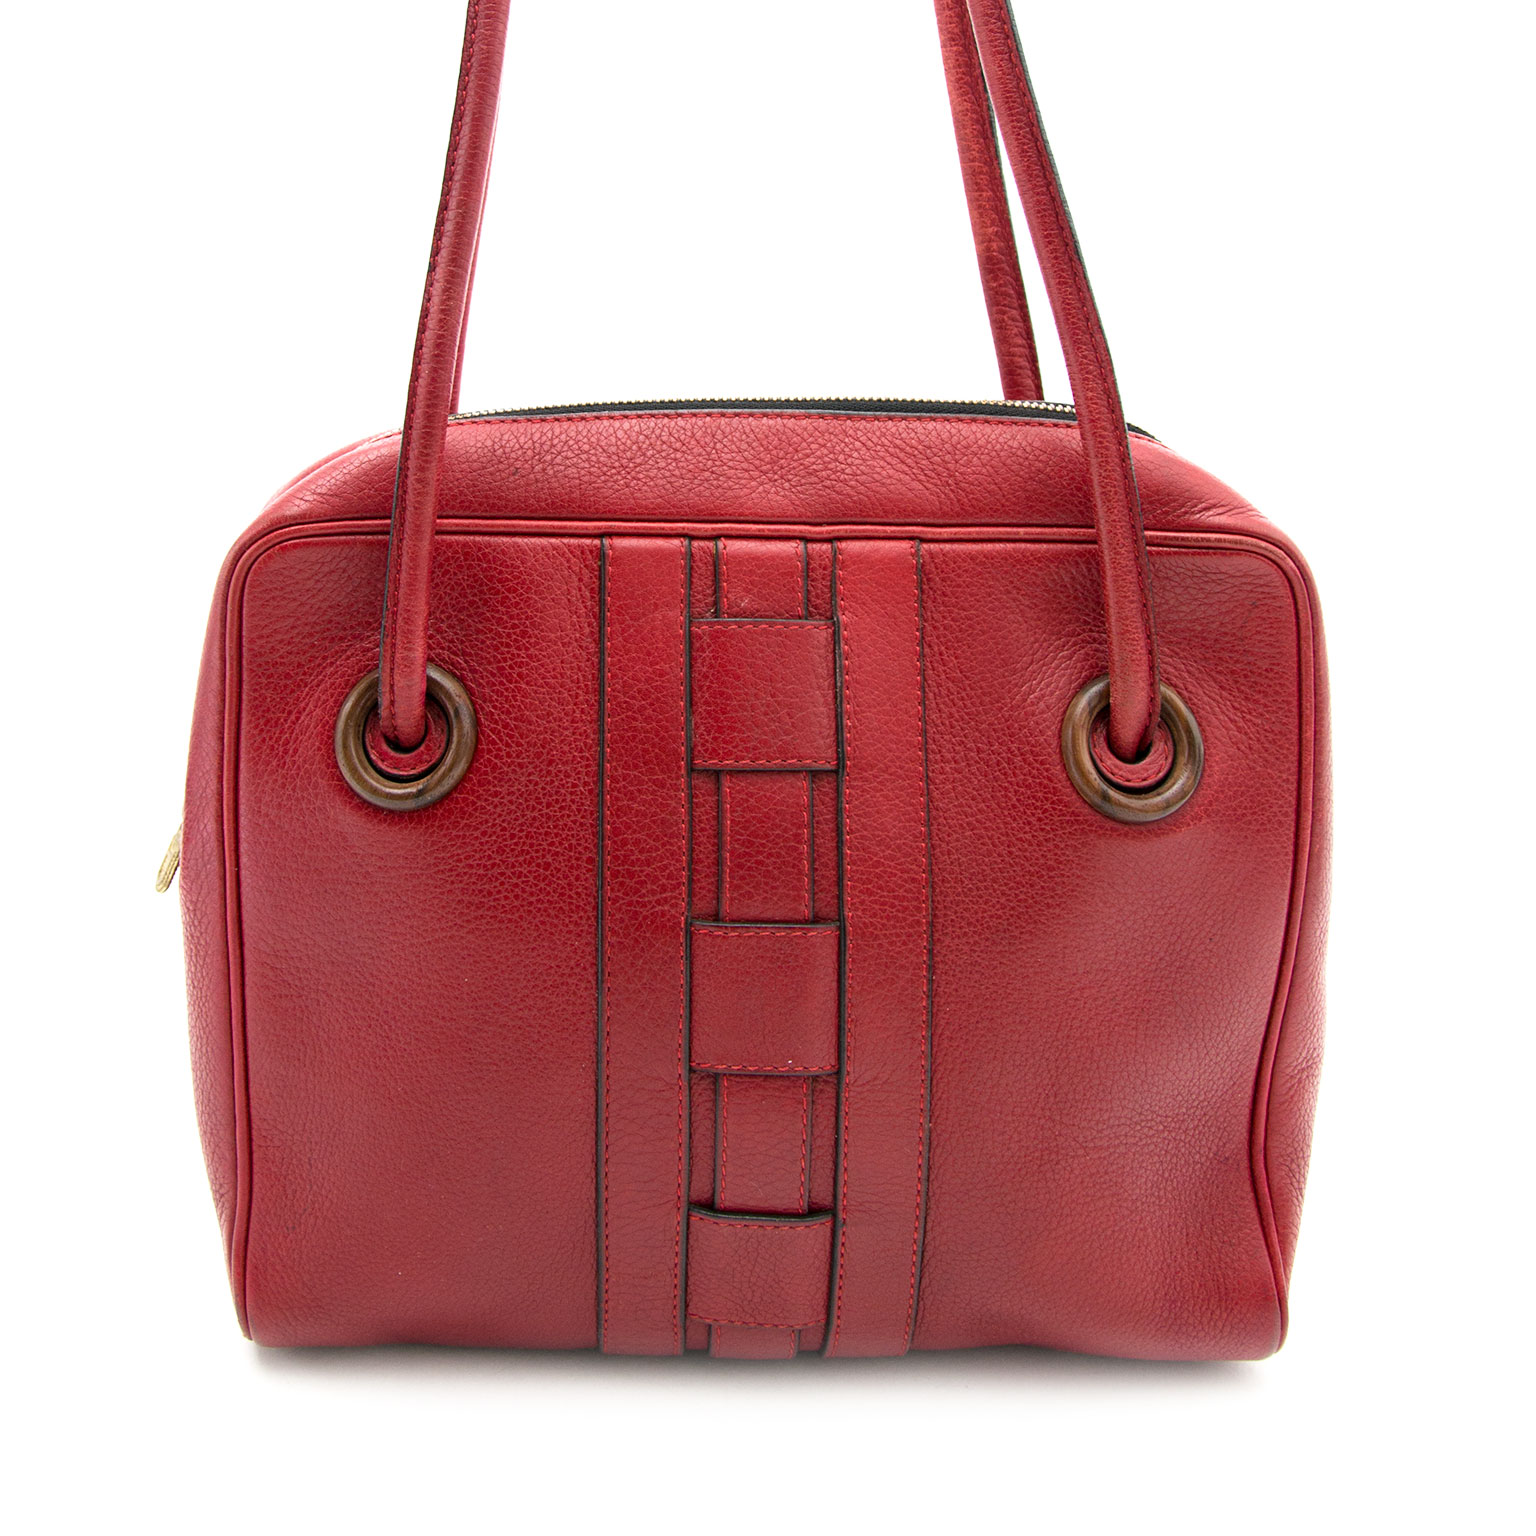 delvaux red shoulder bag now online at labellov.Com for the best price